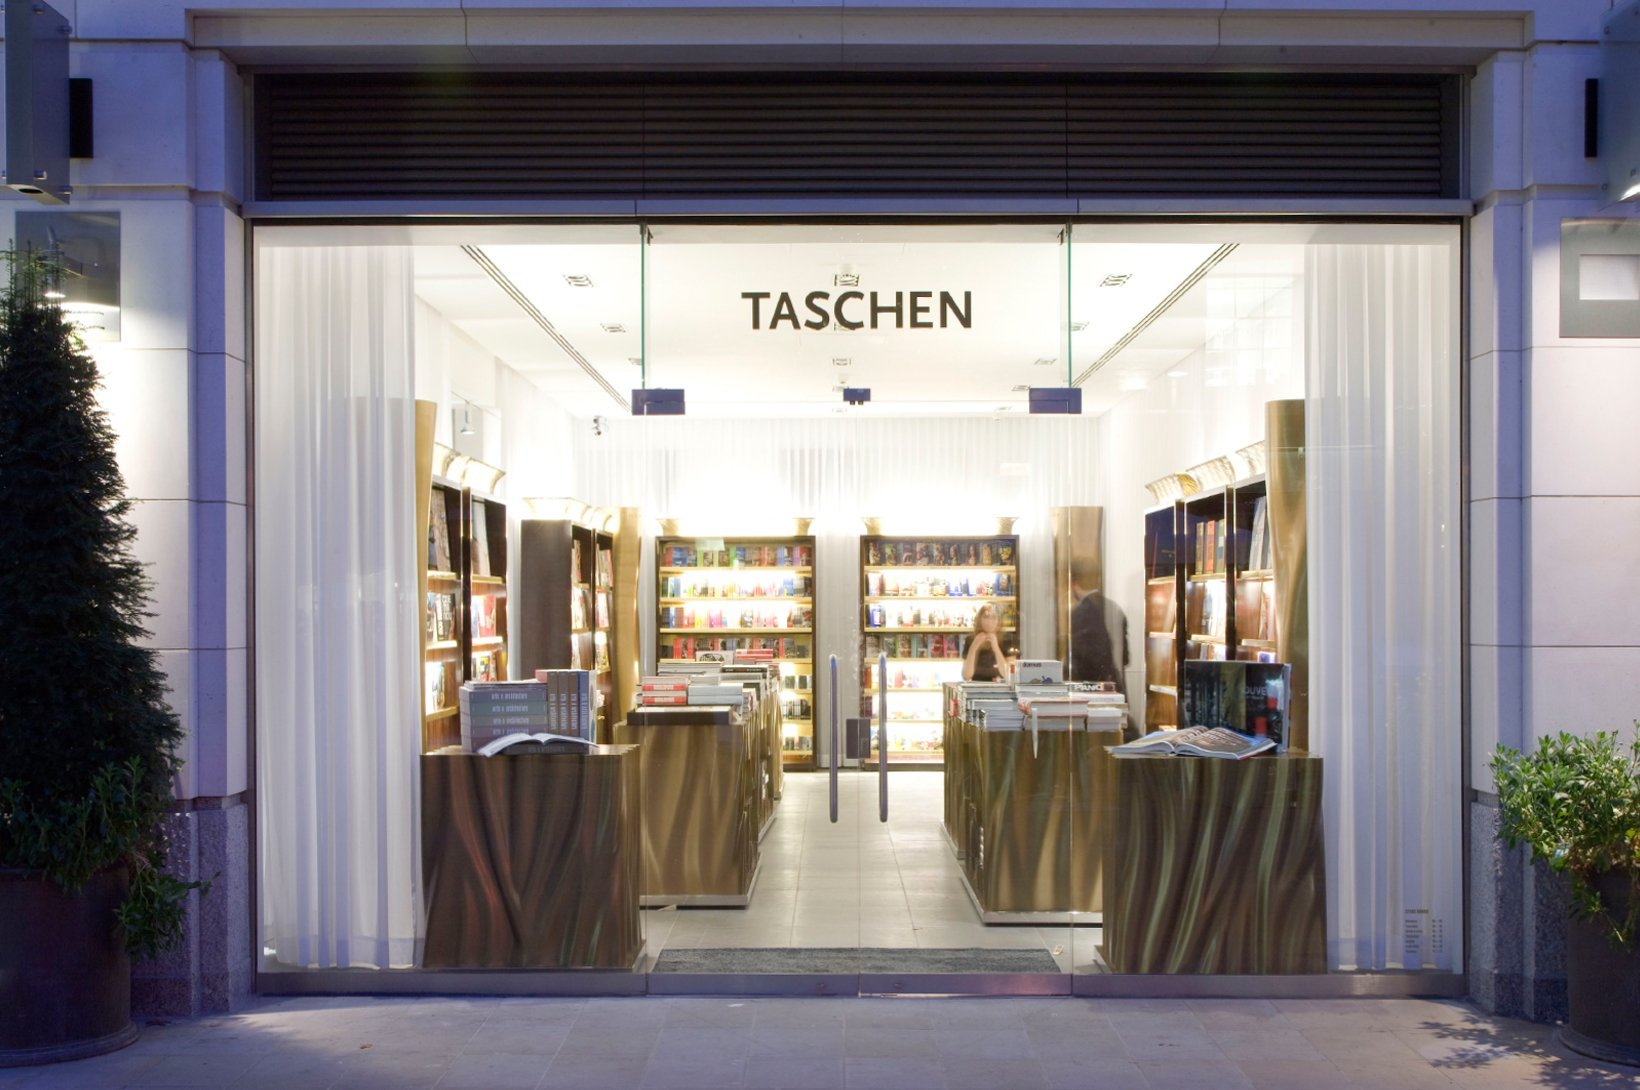 TASCHEN-London-culture and life_02